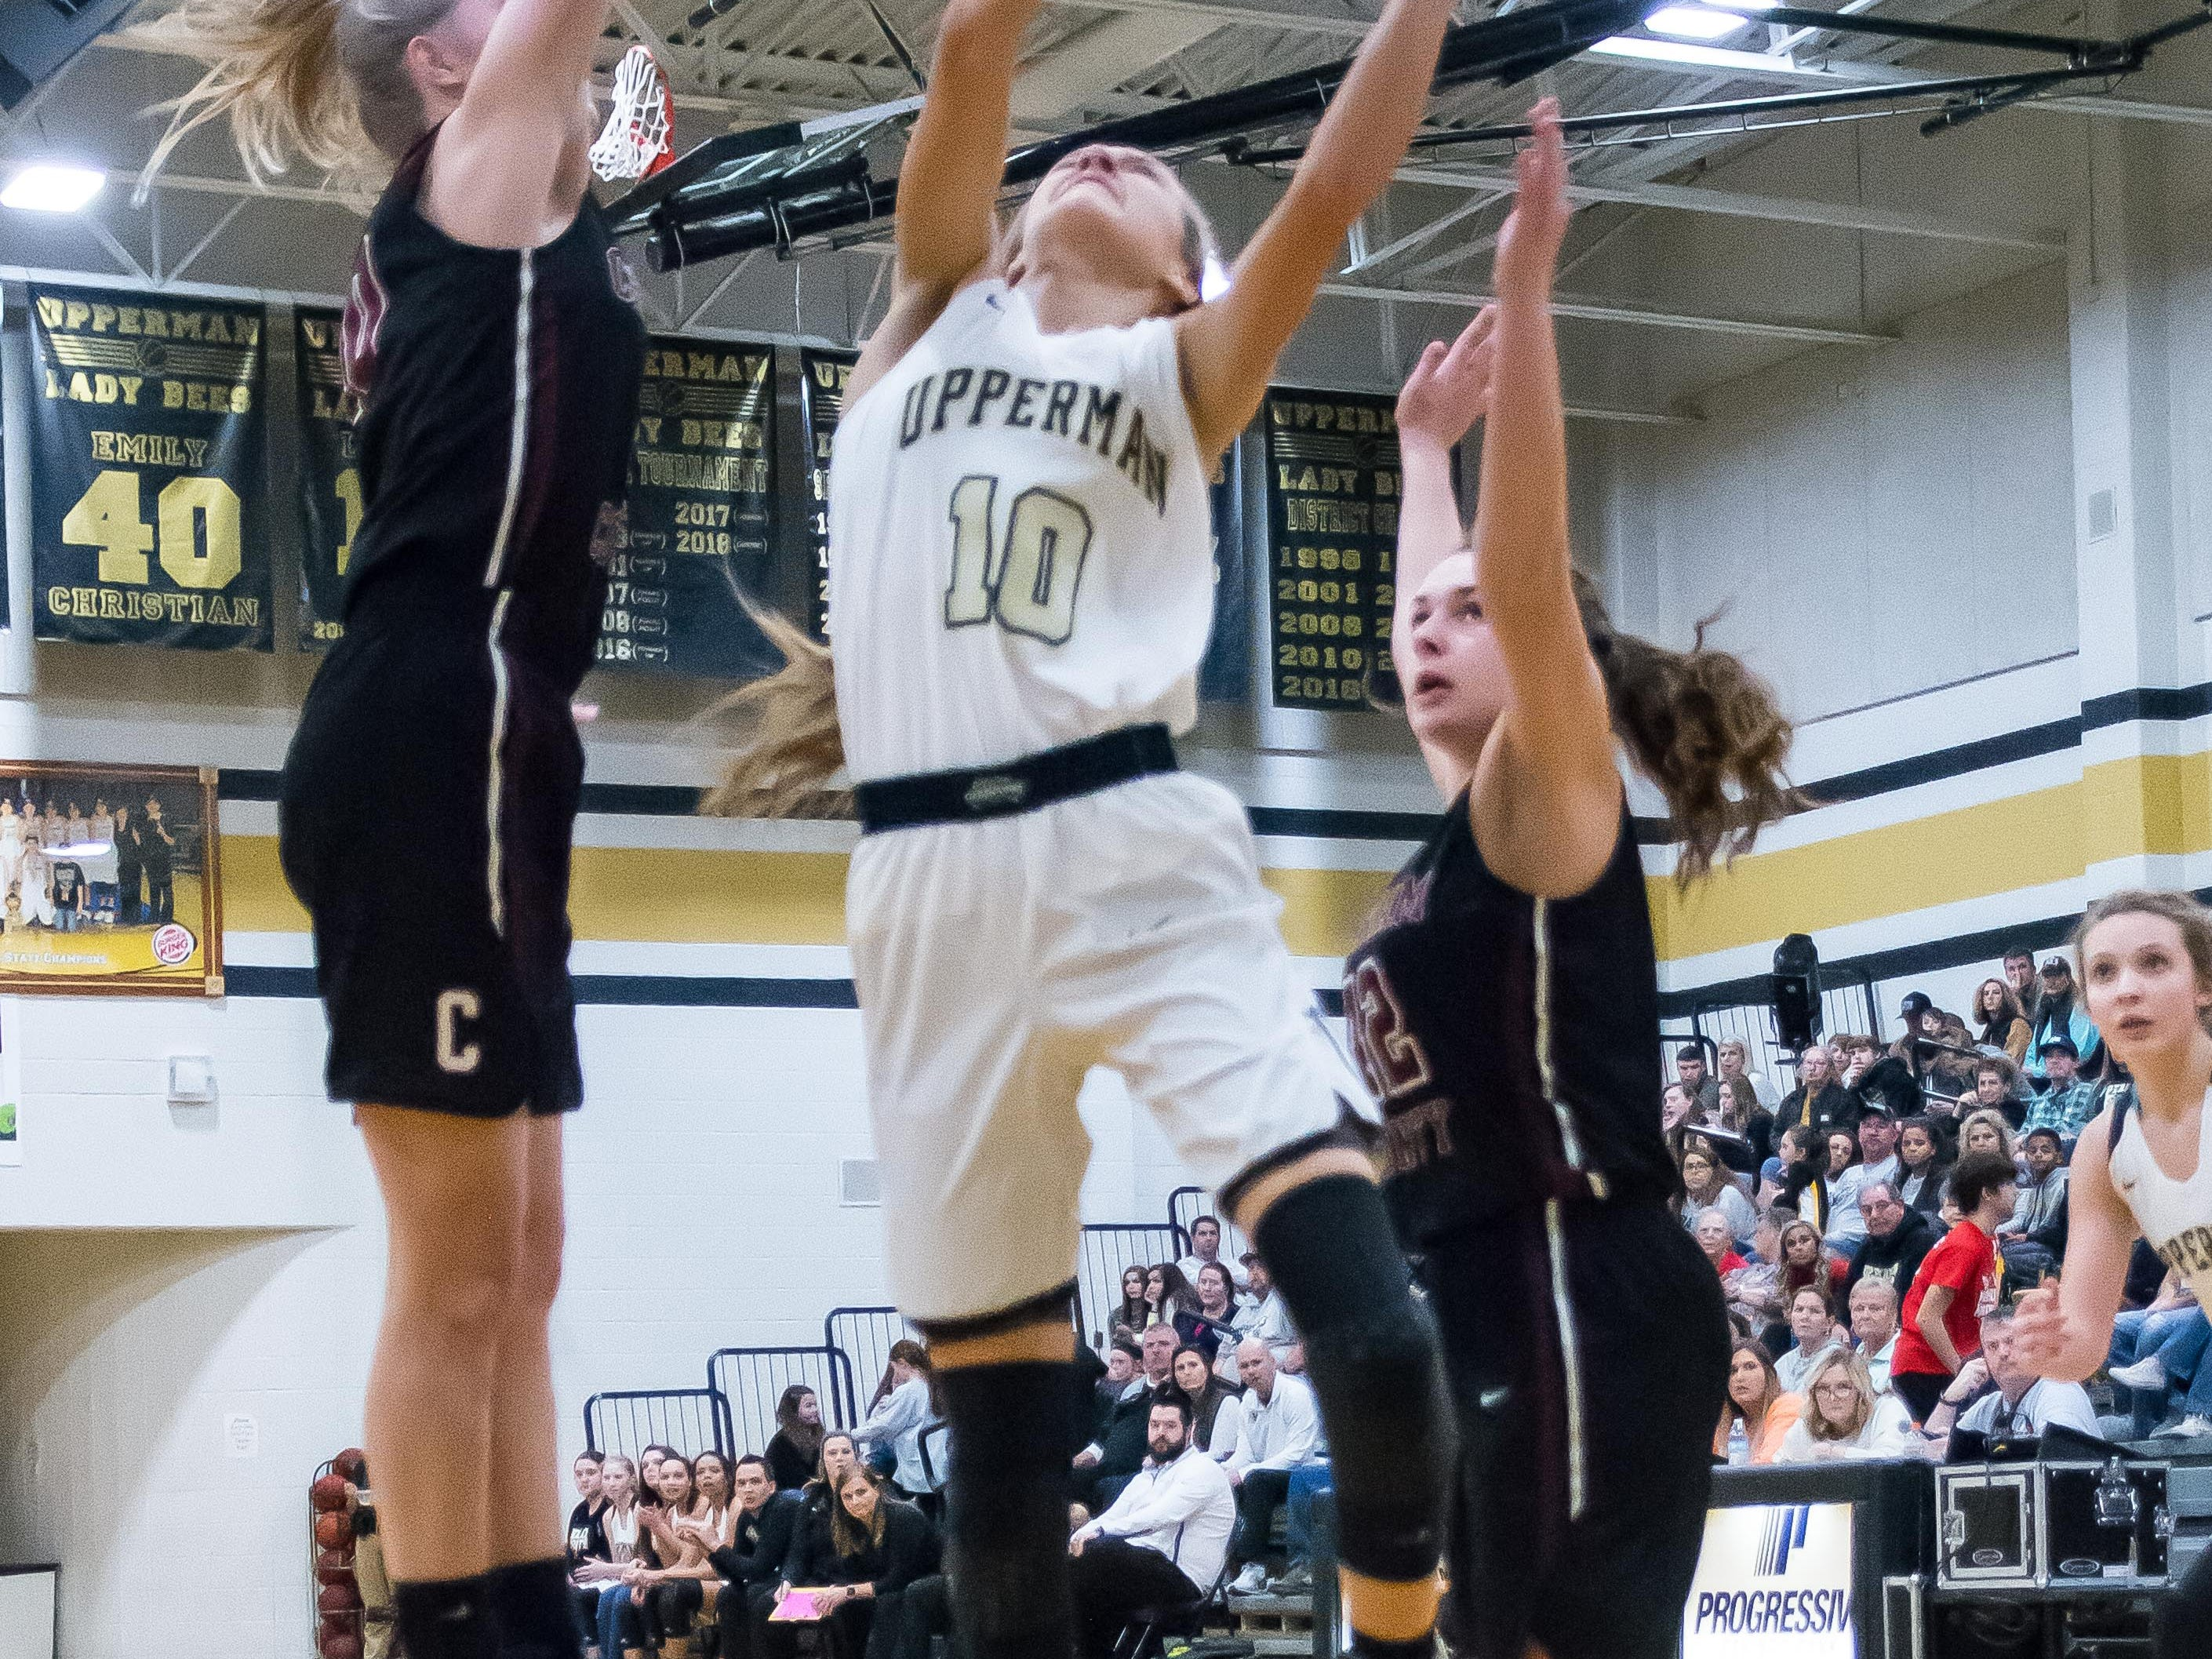 Another look at Reagan Hurst putting up a shot for Upperman.